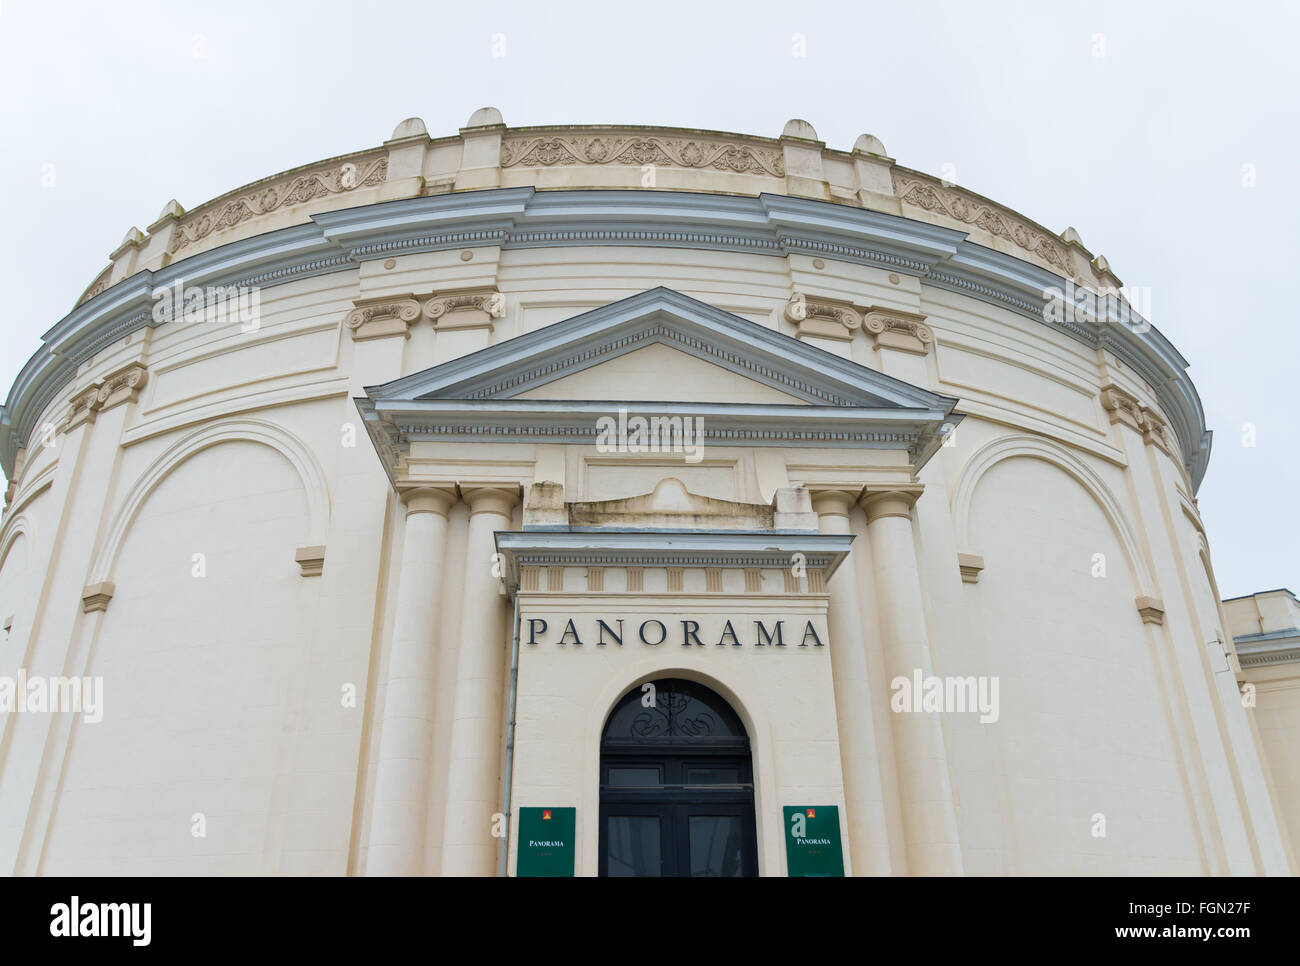 Waterloo, Belgium - July 13, 2015: Panorama museum building exterior. The museum contains a  cylindrical painting - Stock Image